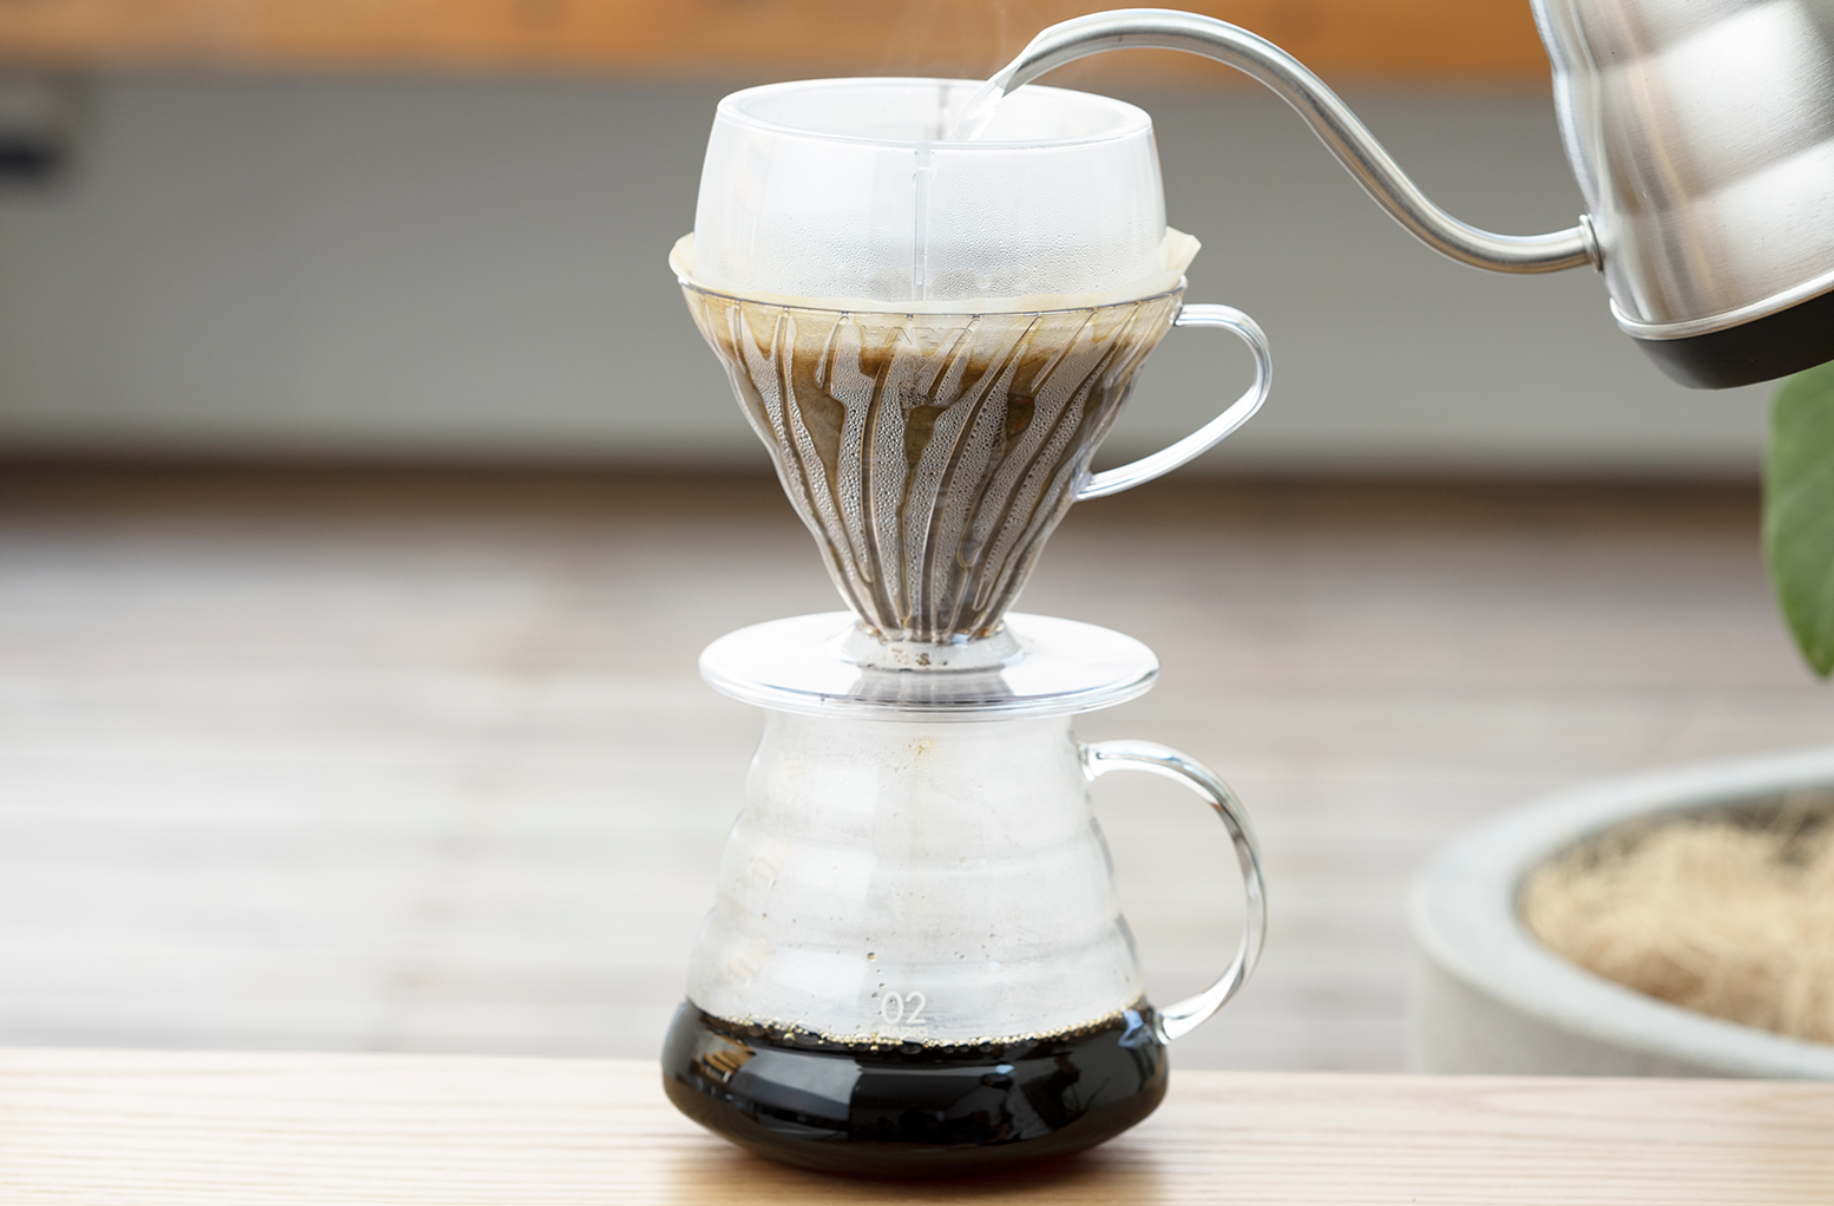 V60 Drip-Assist Set in action